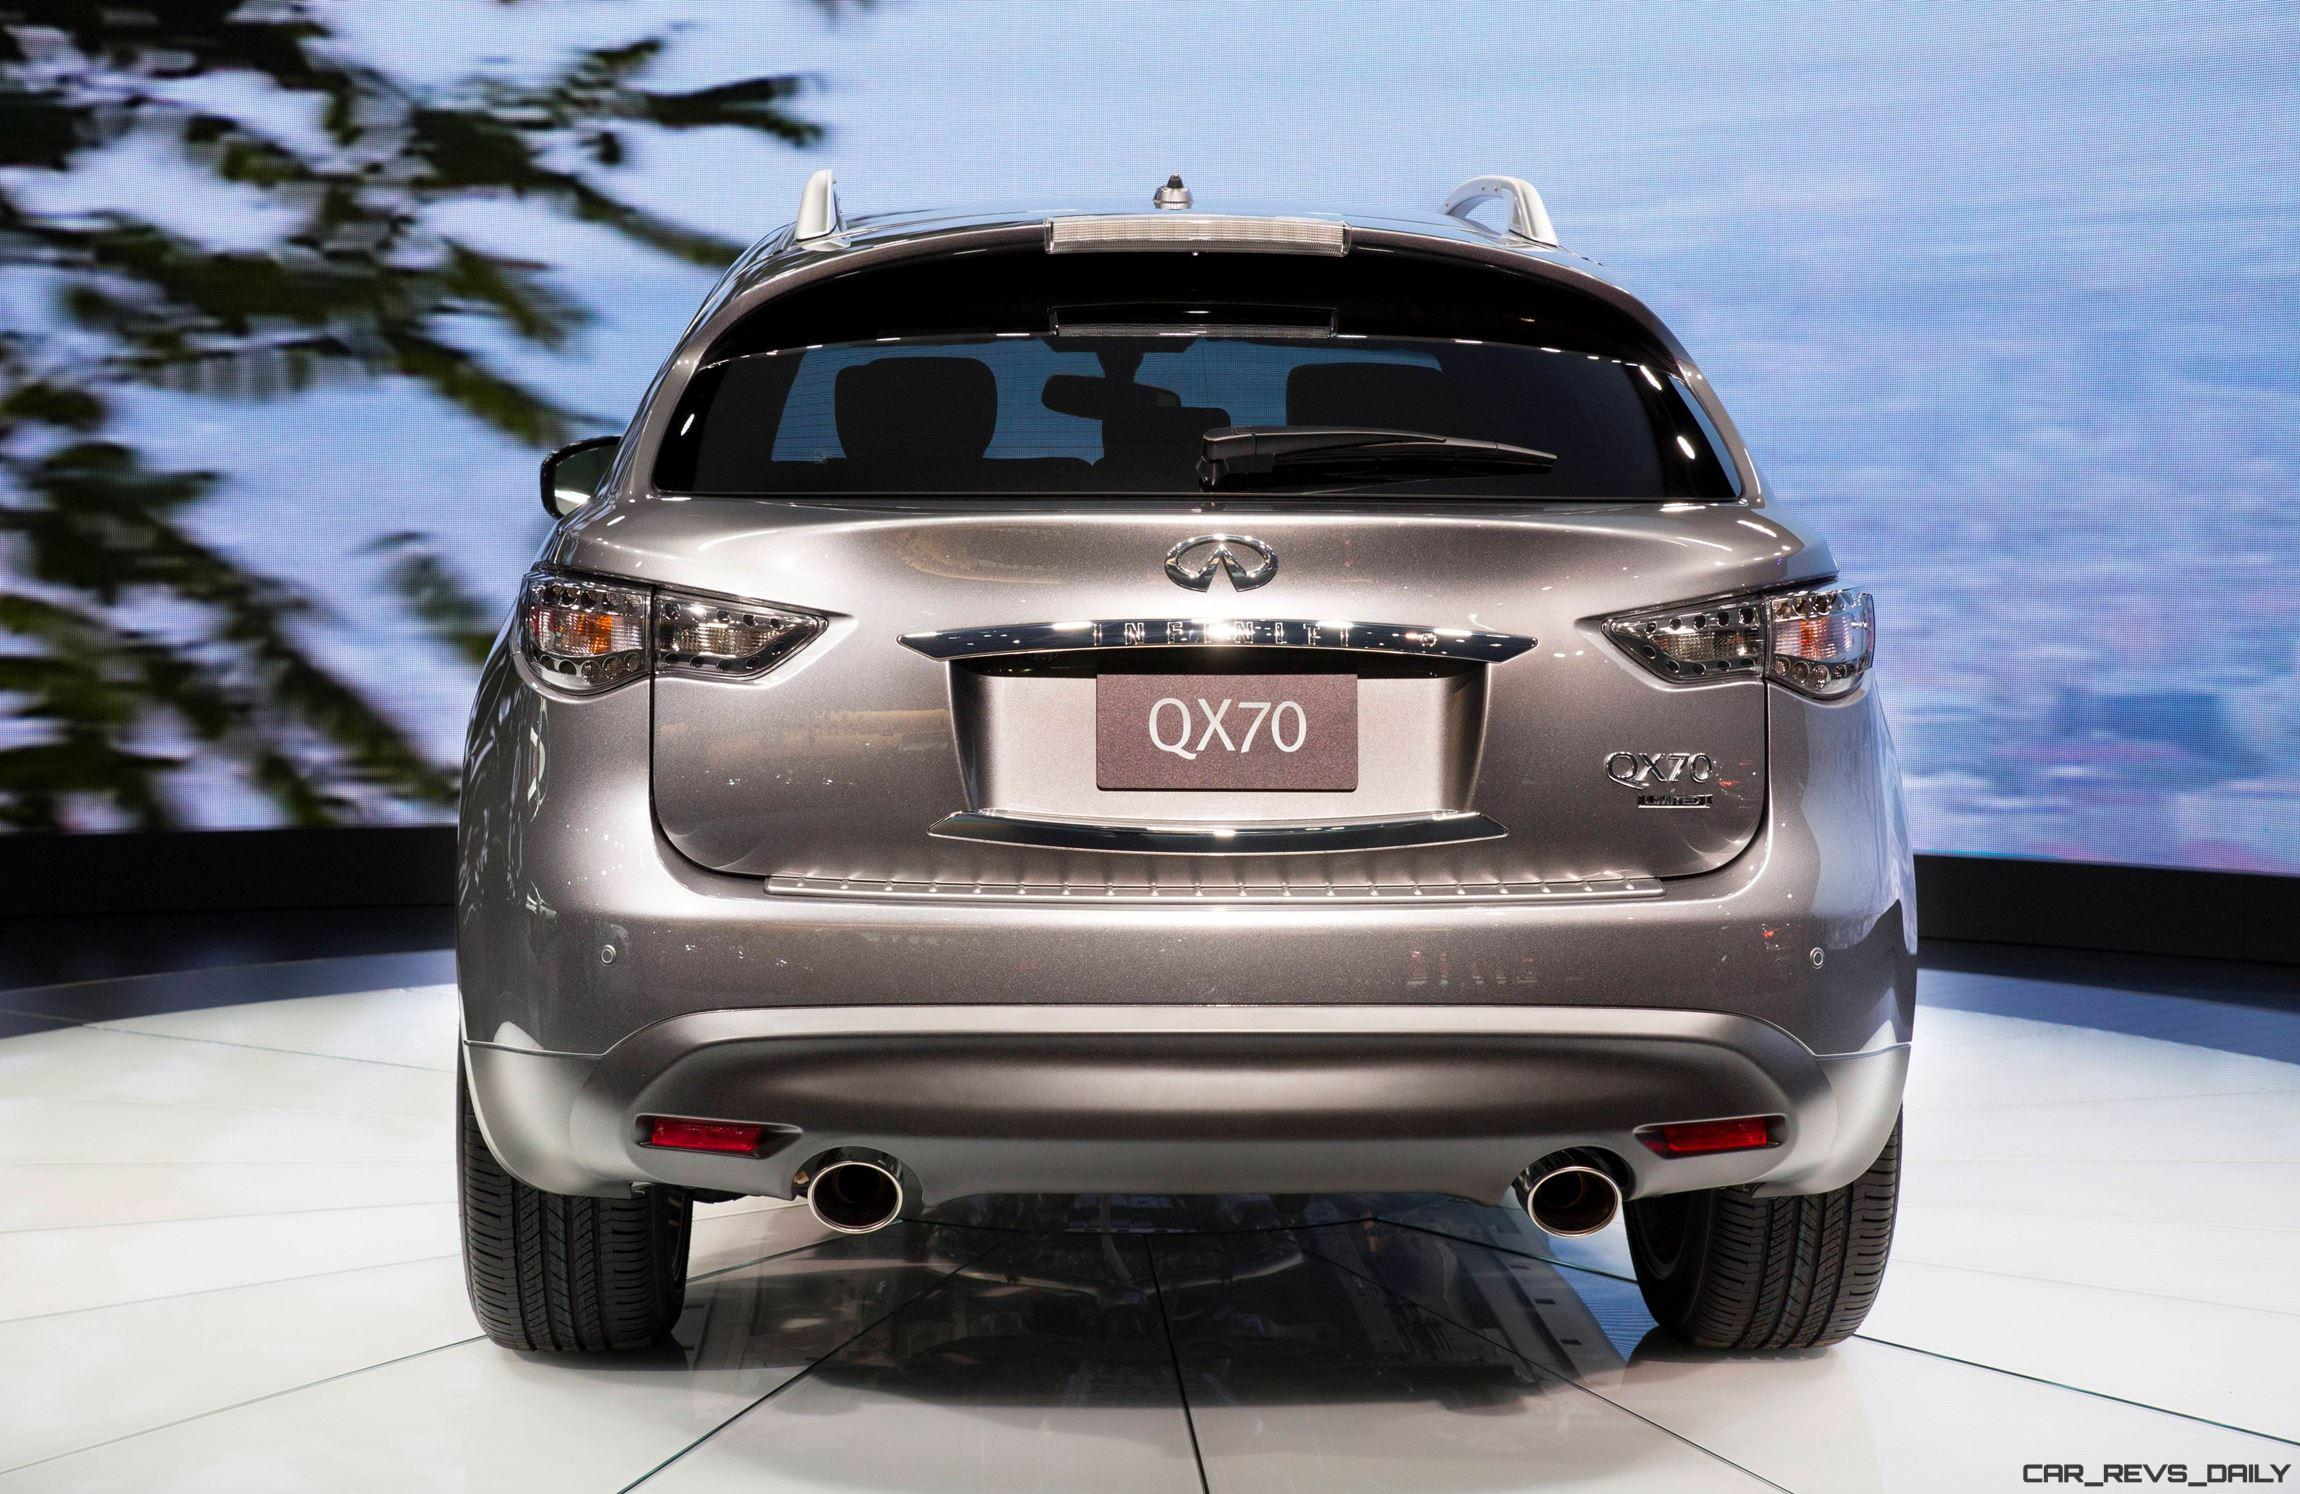 Infinity For Sale >> 2017 Infiniti QX70 Limited - Live from New York » CAR SHOPPING